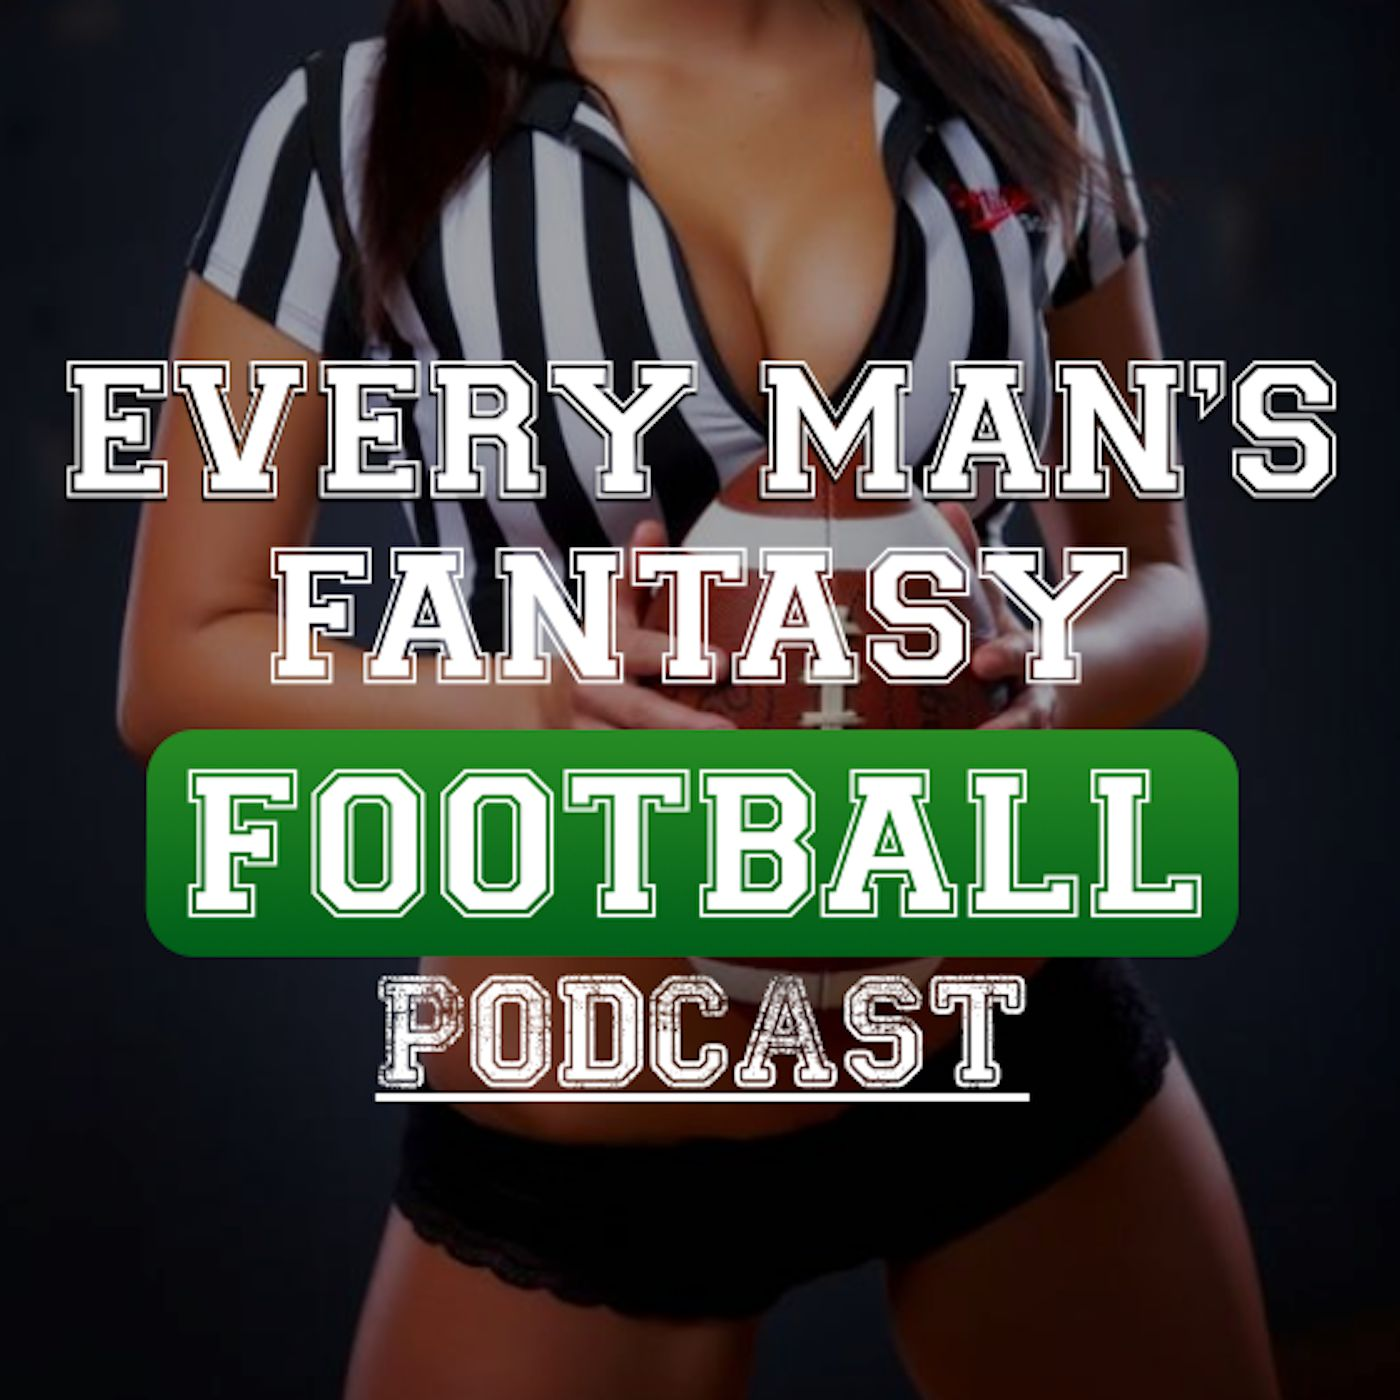 Every Man's Fantasy Football Podcast